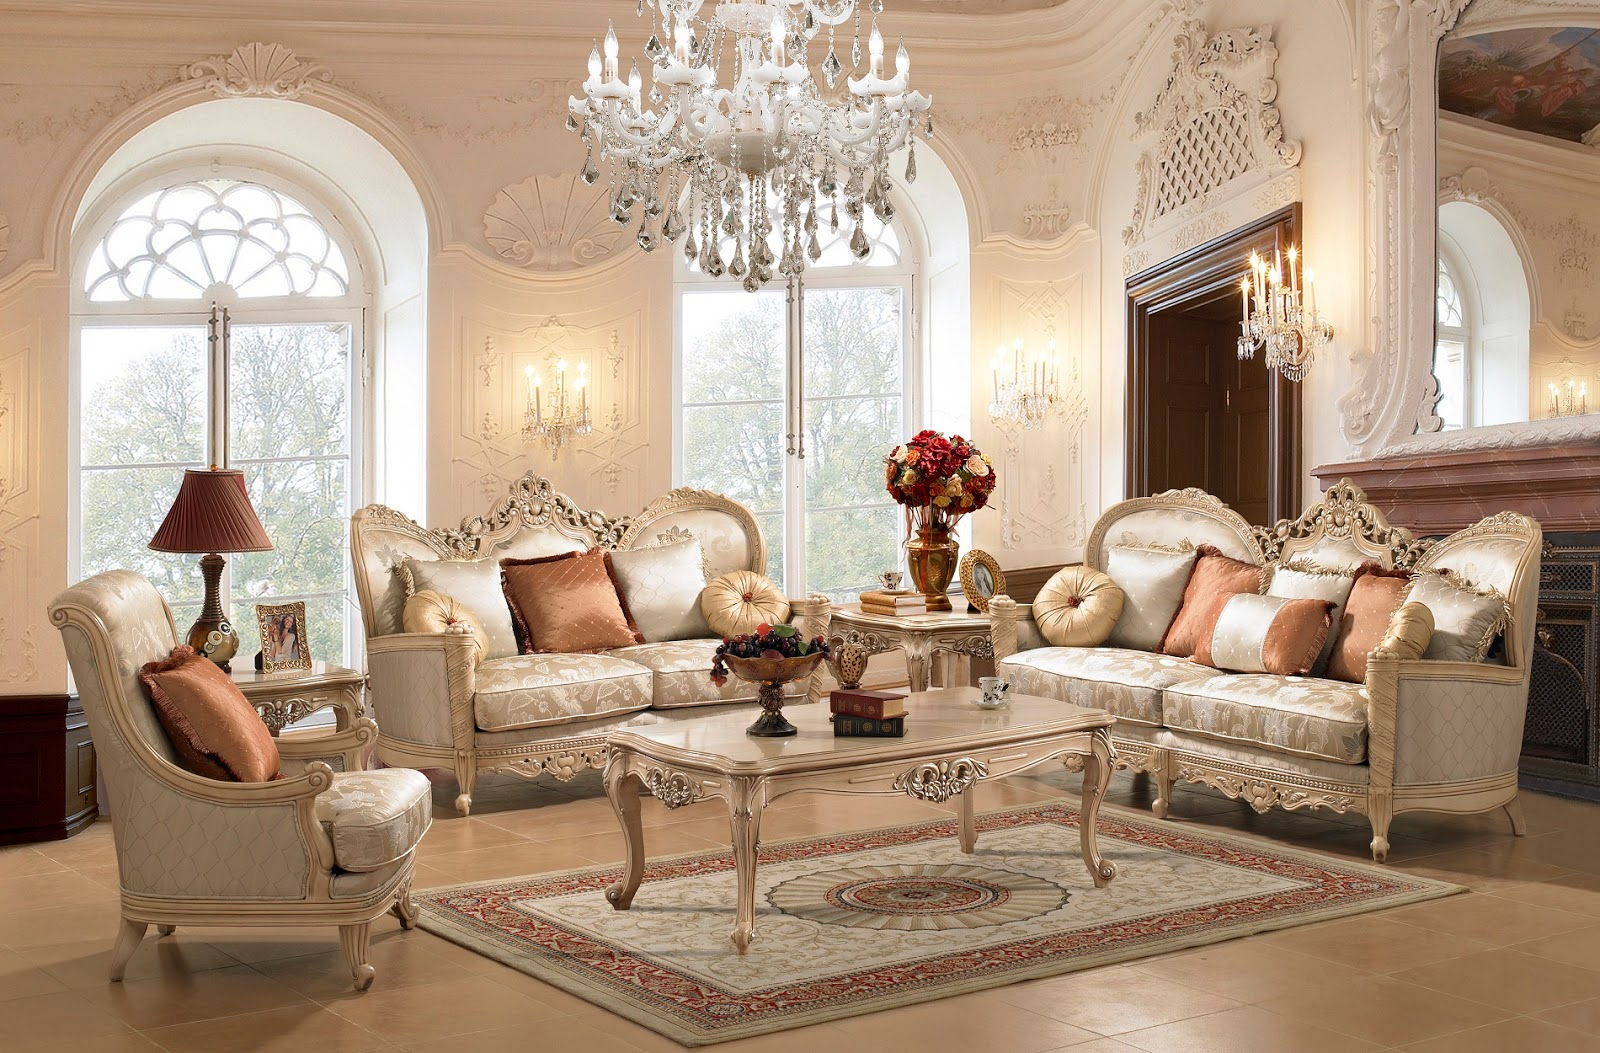 Charmant Luxurious Classic Sofas For Your Cozy Room